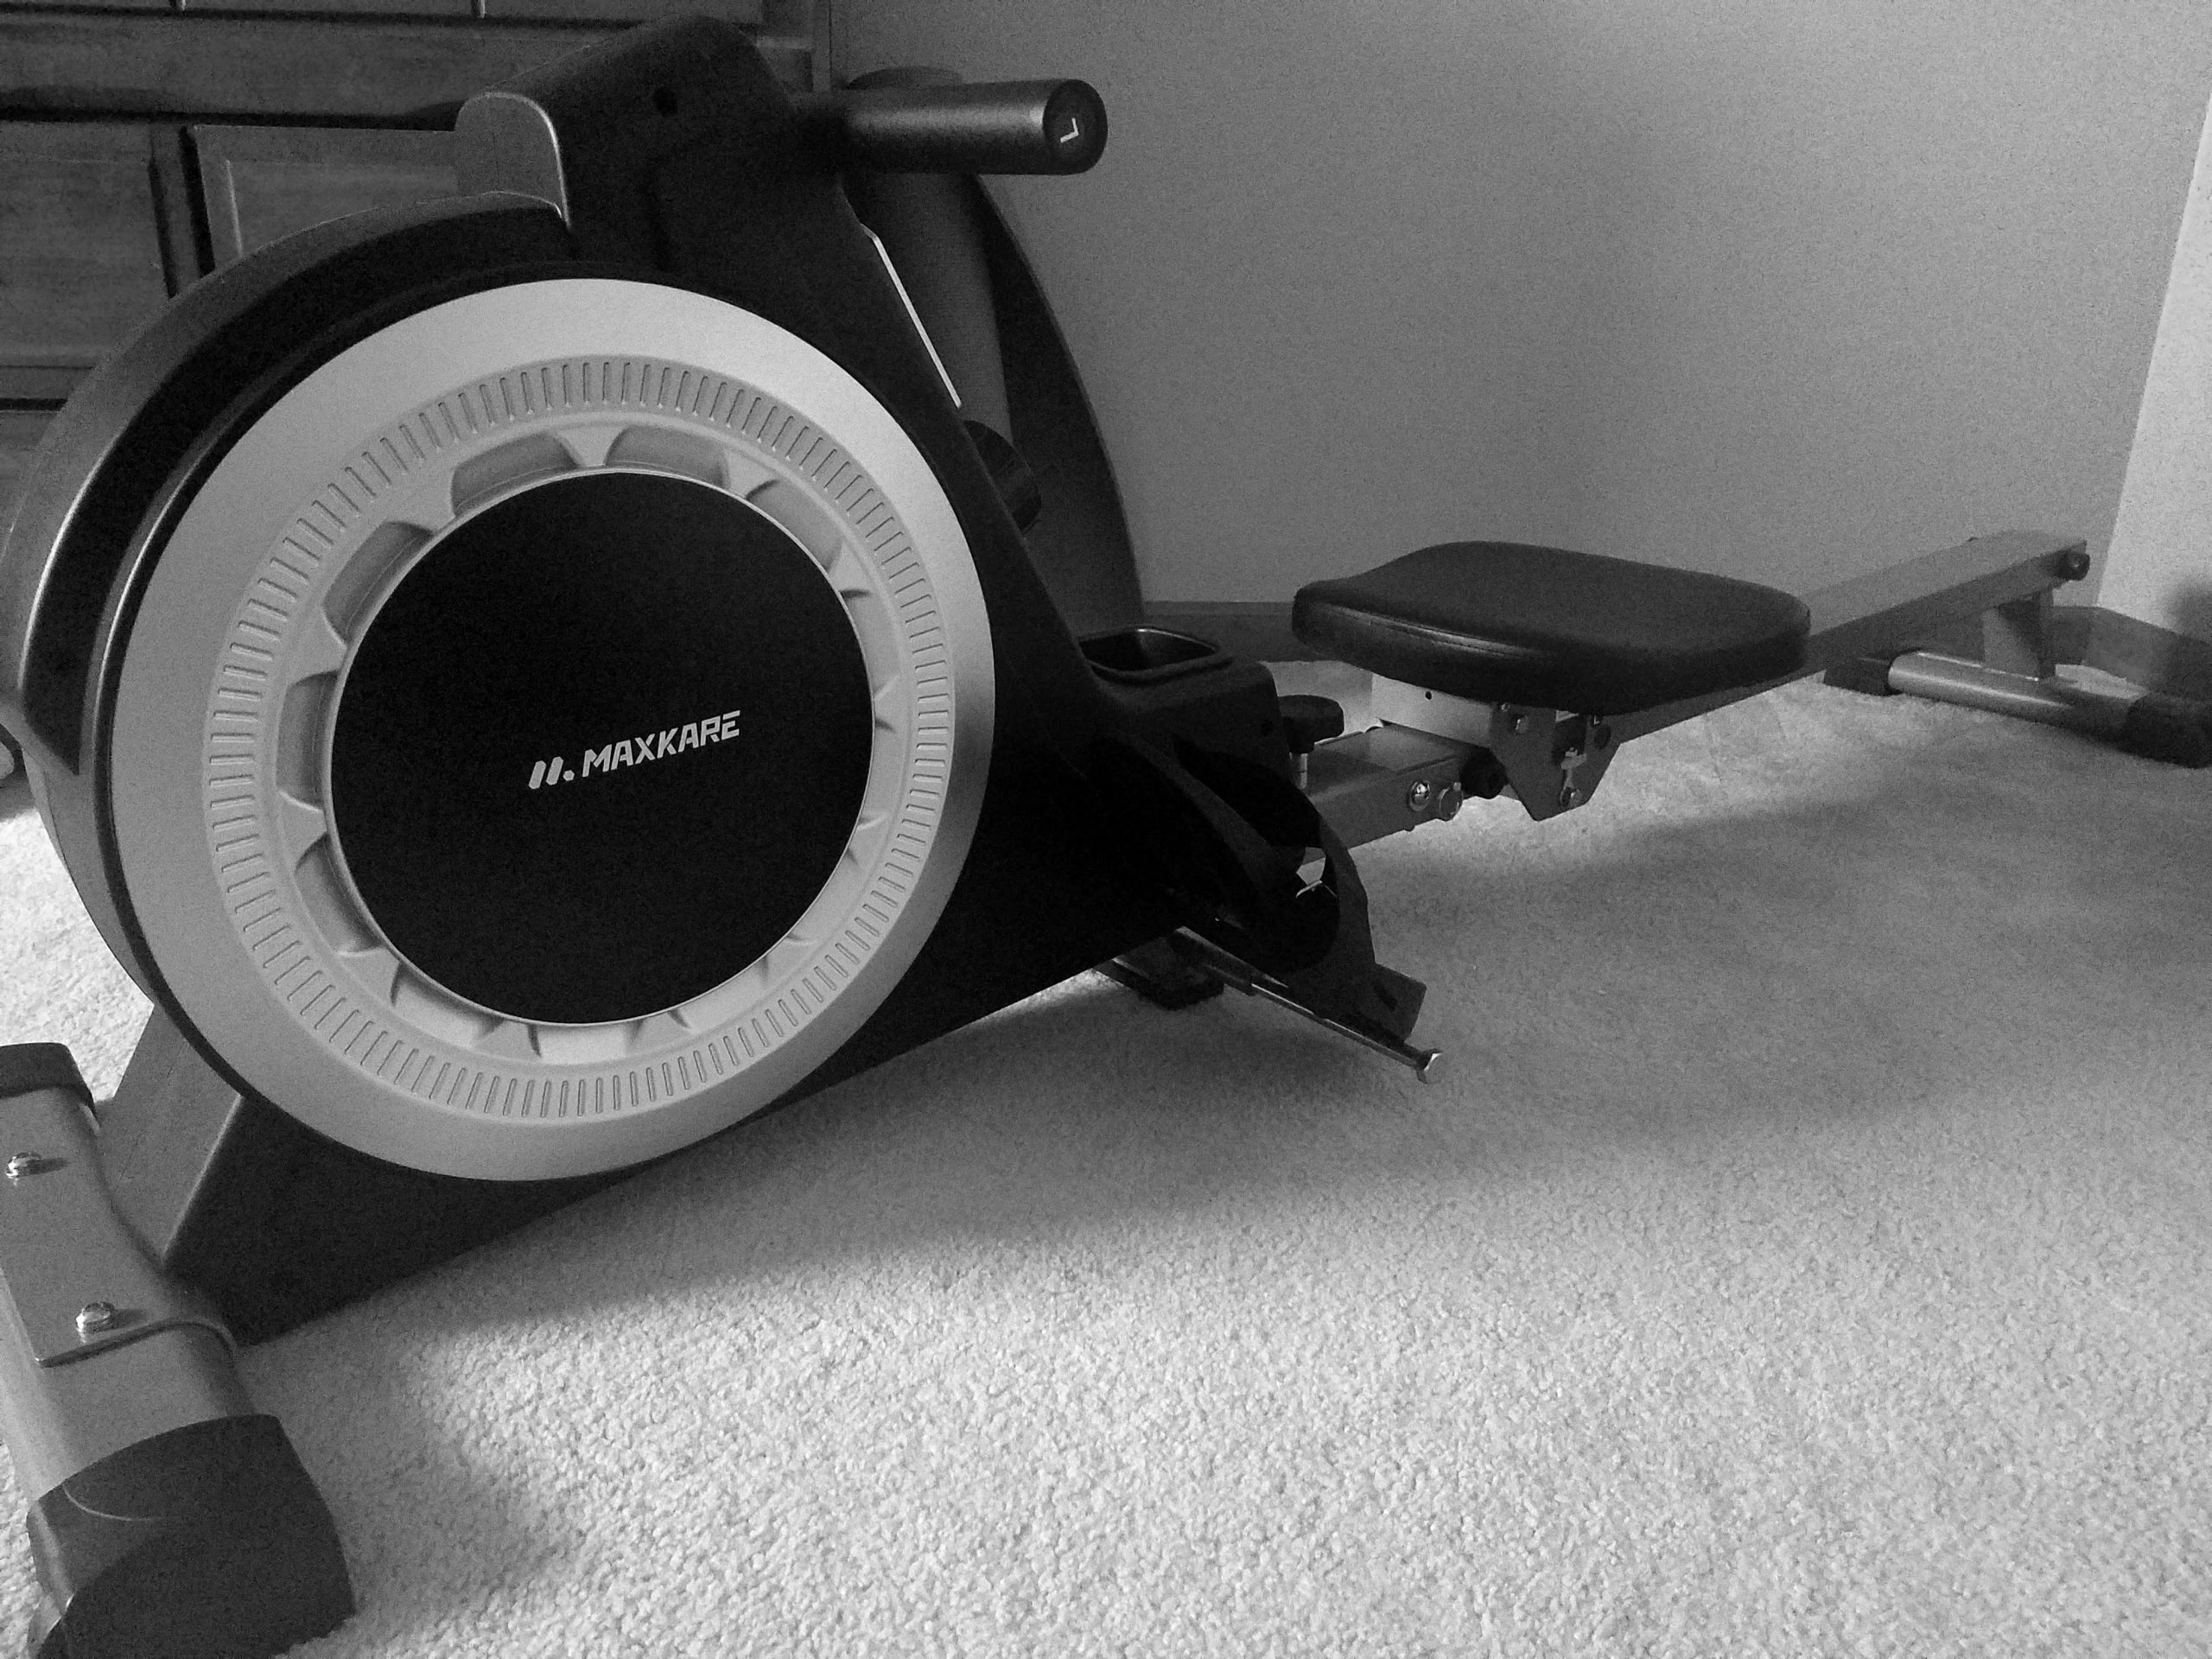 Rowing machine for exercising with POTS